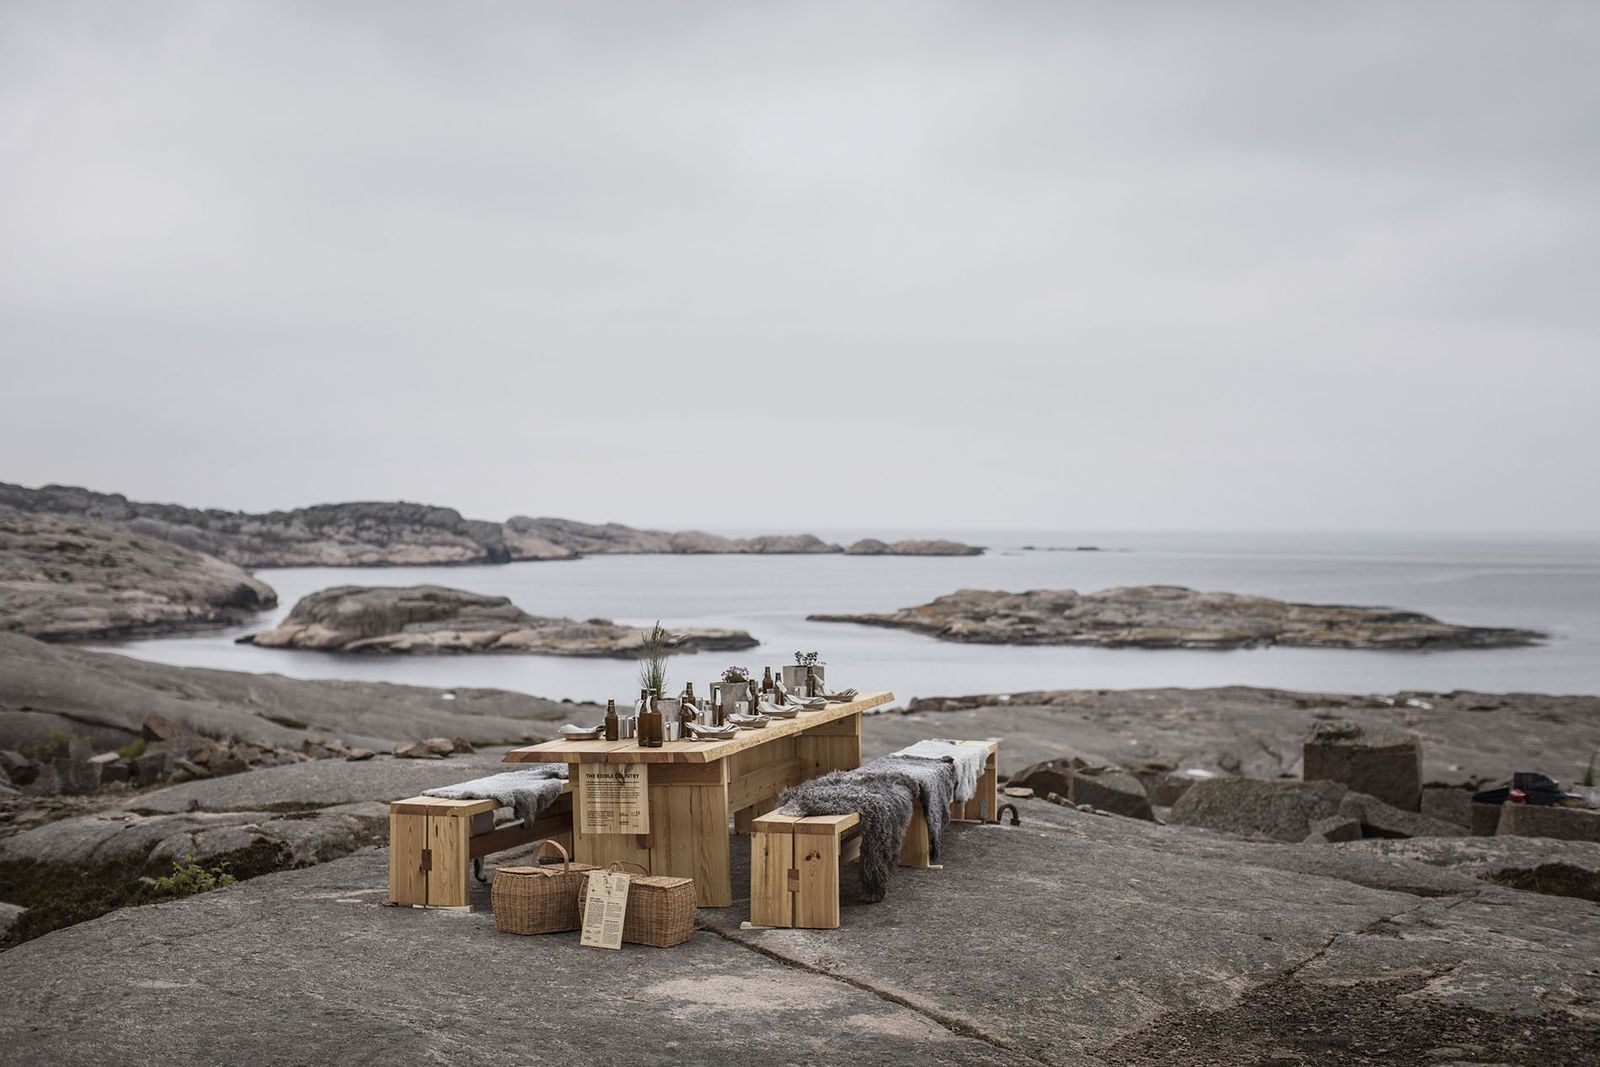 Edible Country picnic table set up with a sea view at Ramsvikslandet.